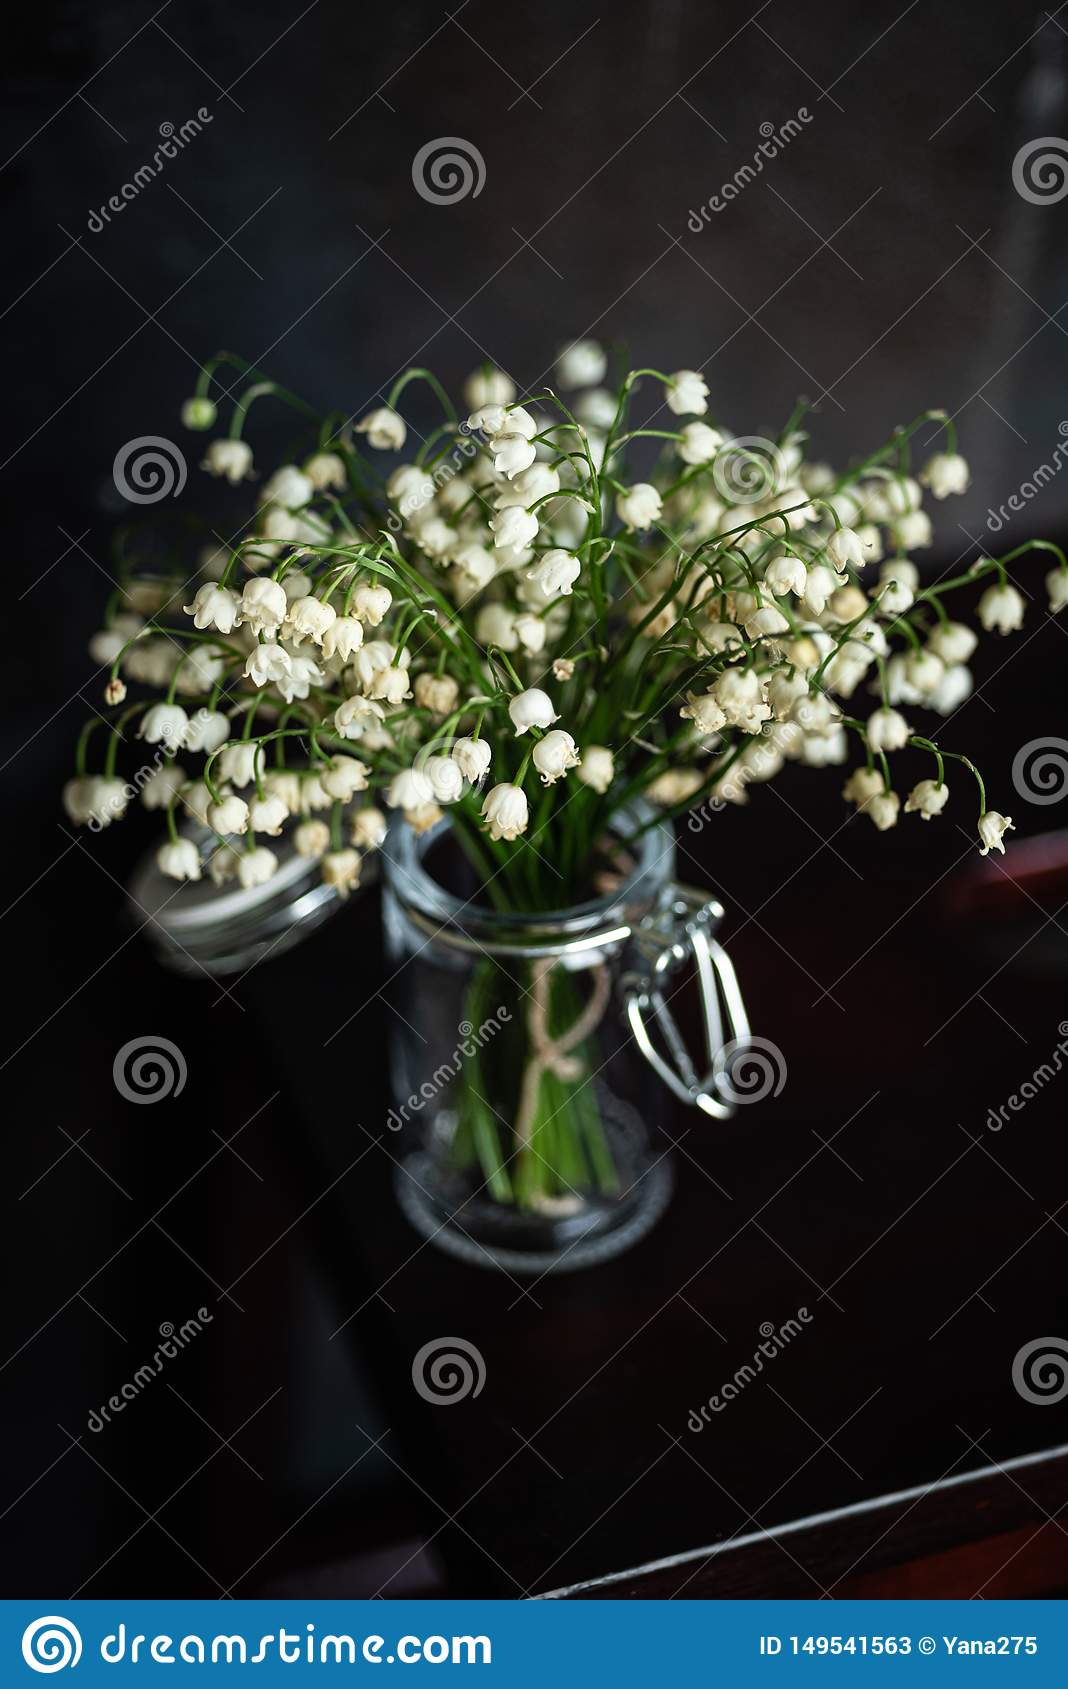 Bouquet of lilies of the valley, dark background